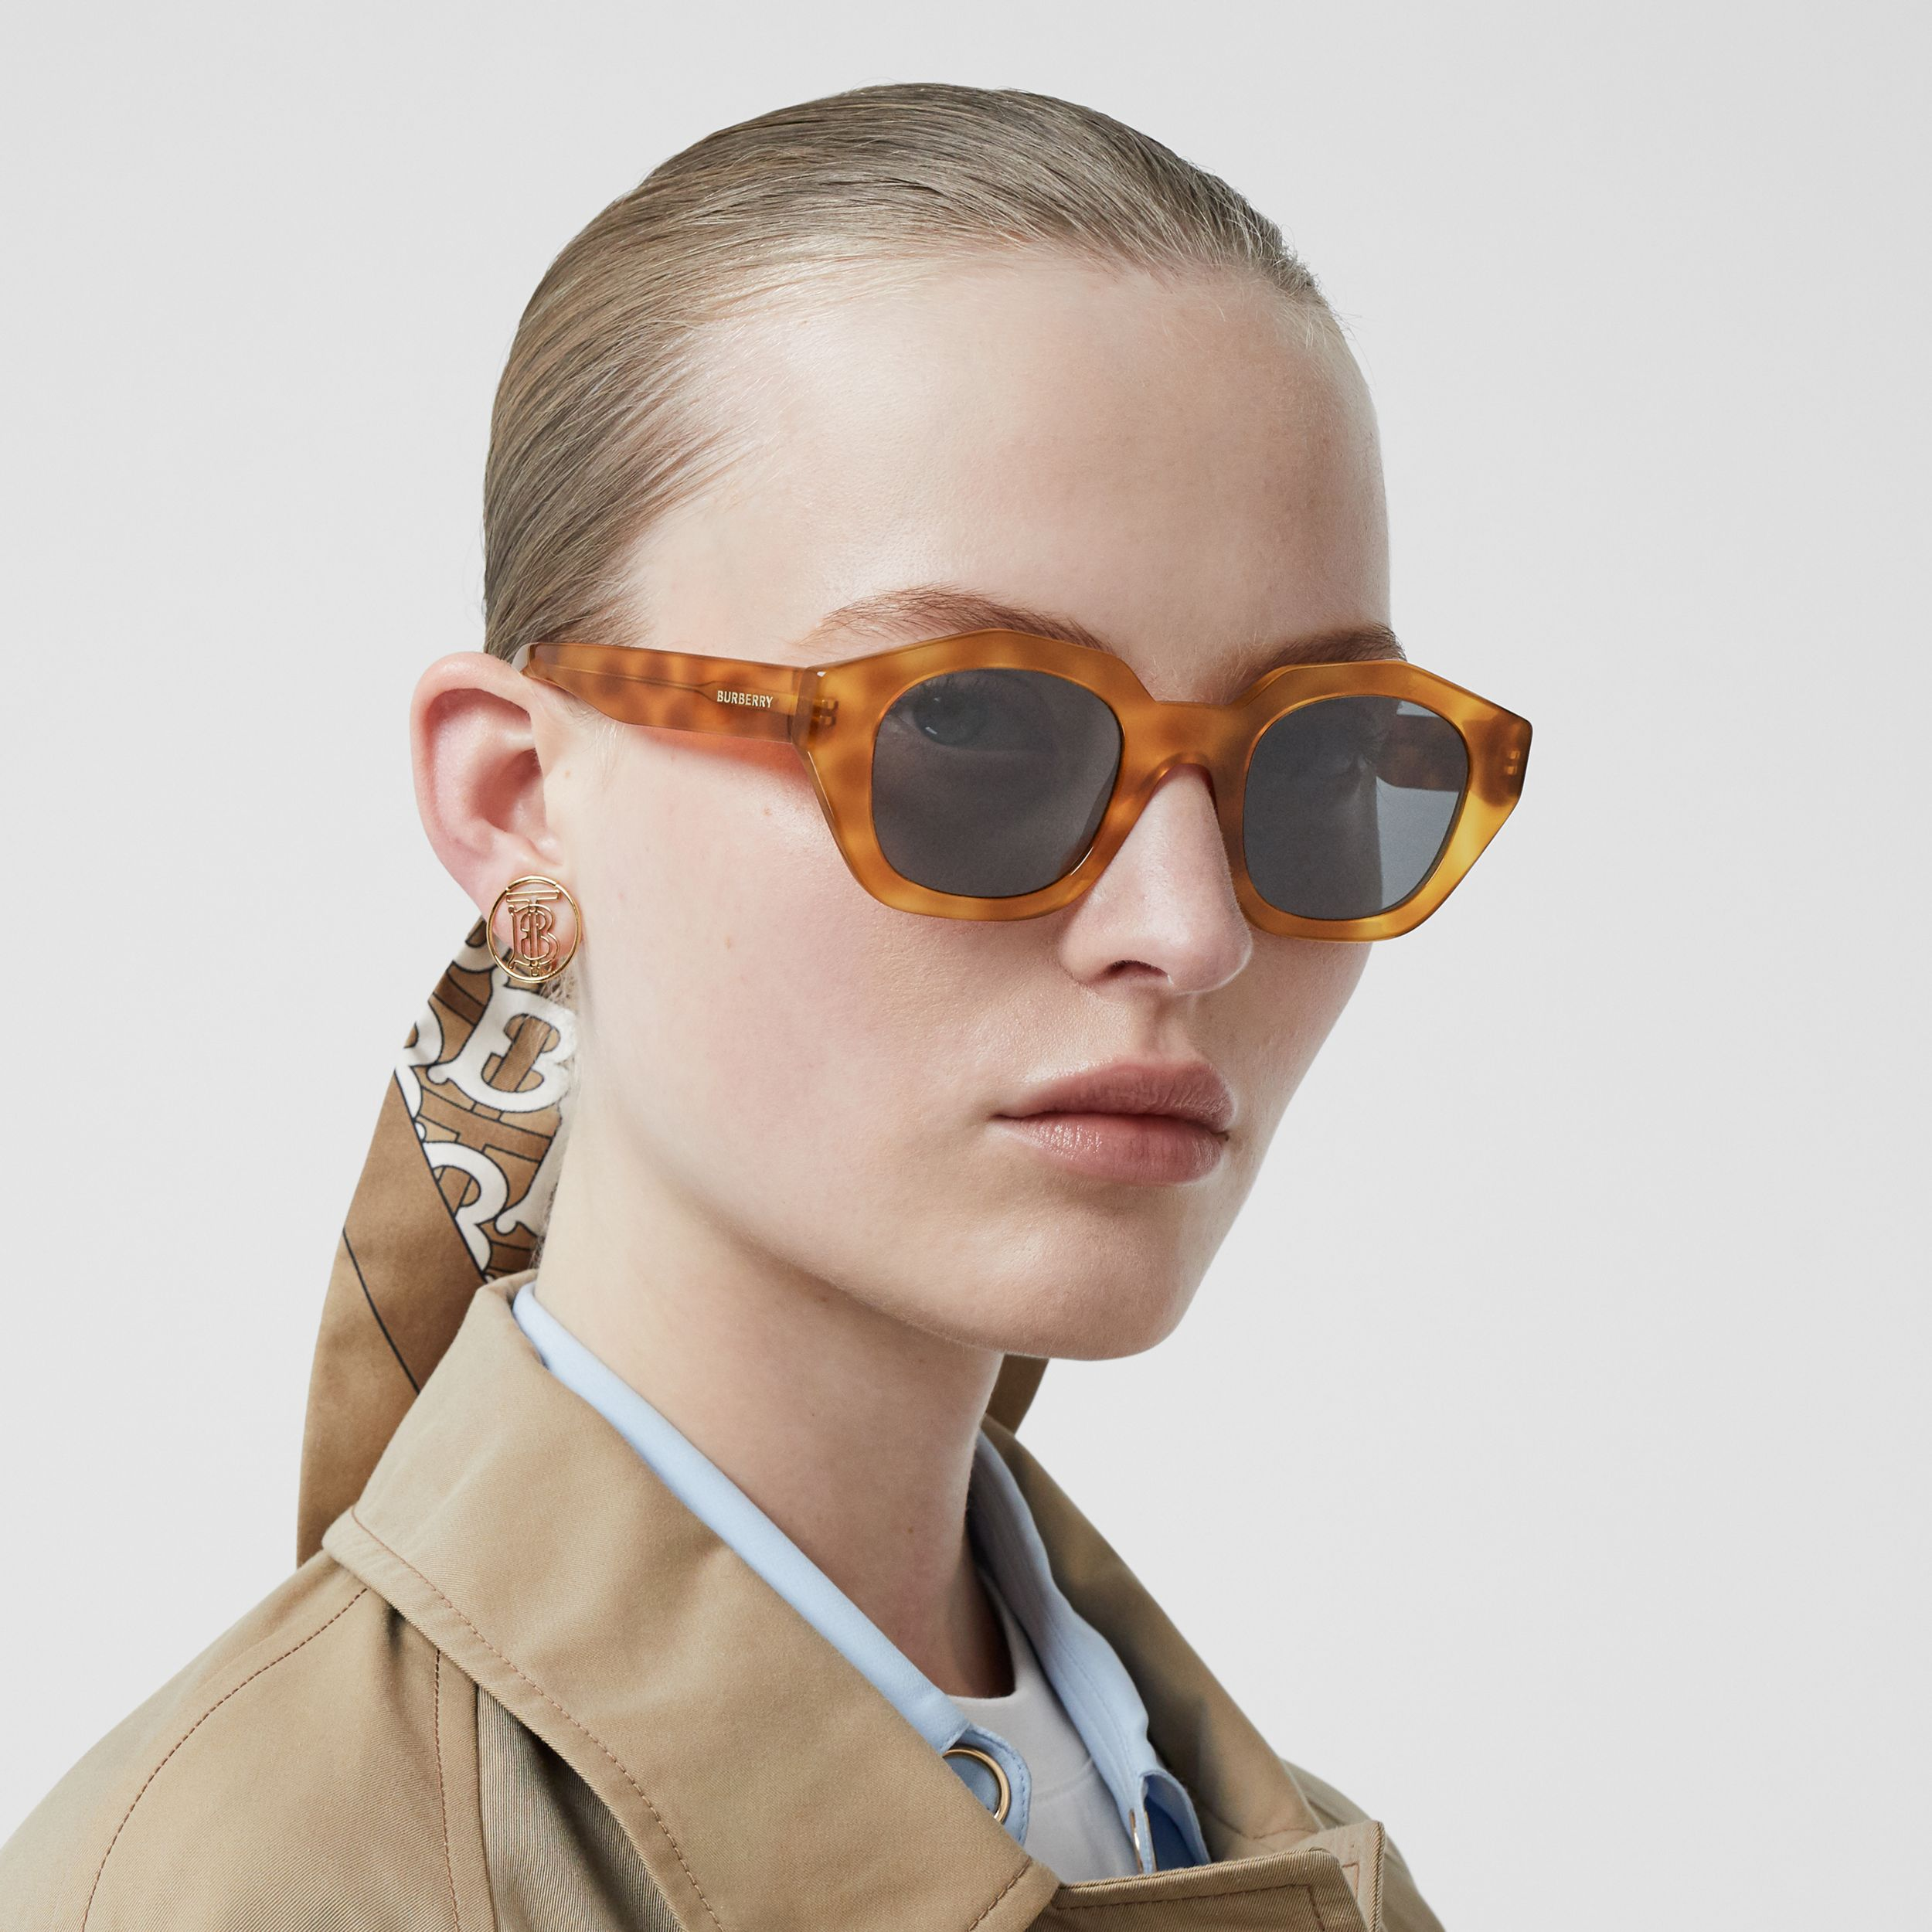 Geometric Frame Sunglasses in Tortoiseshell Amber - Women | Burberry - 3